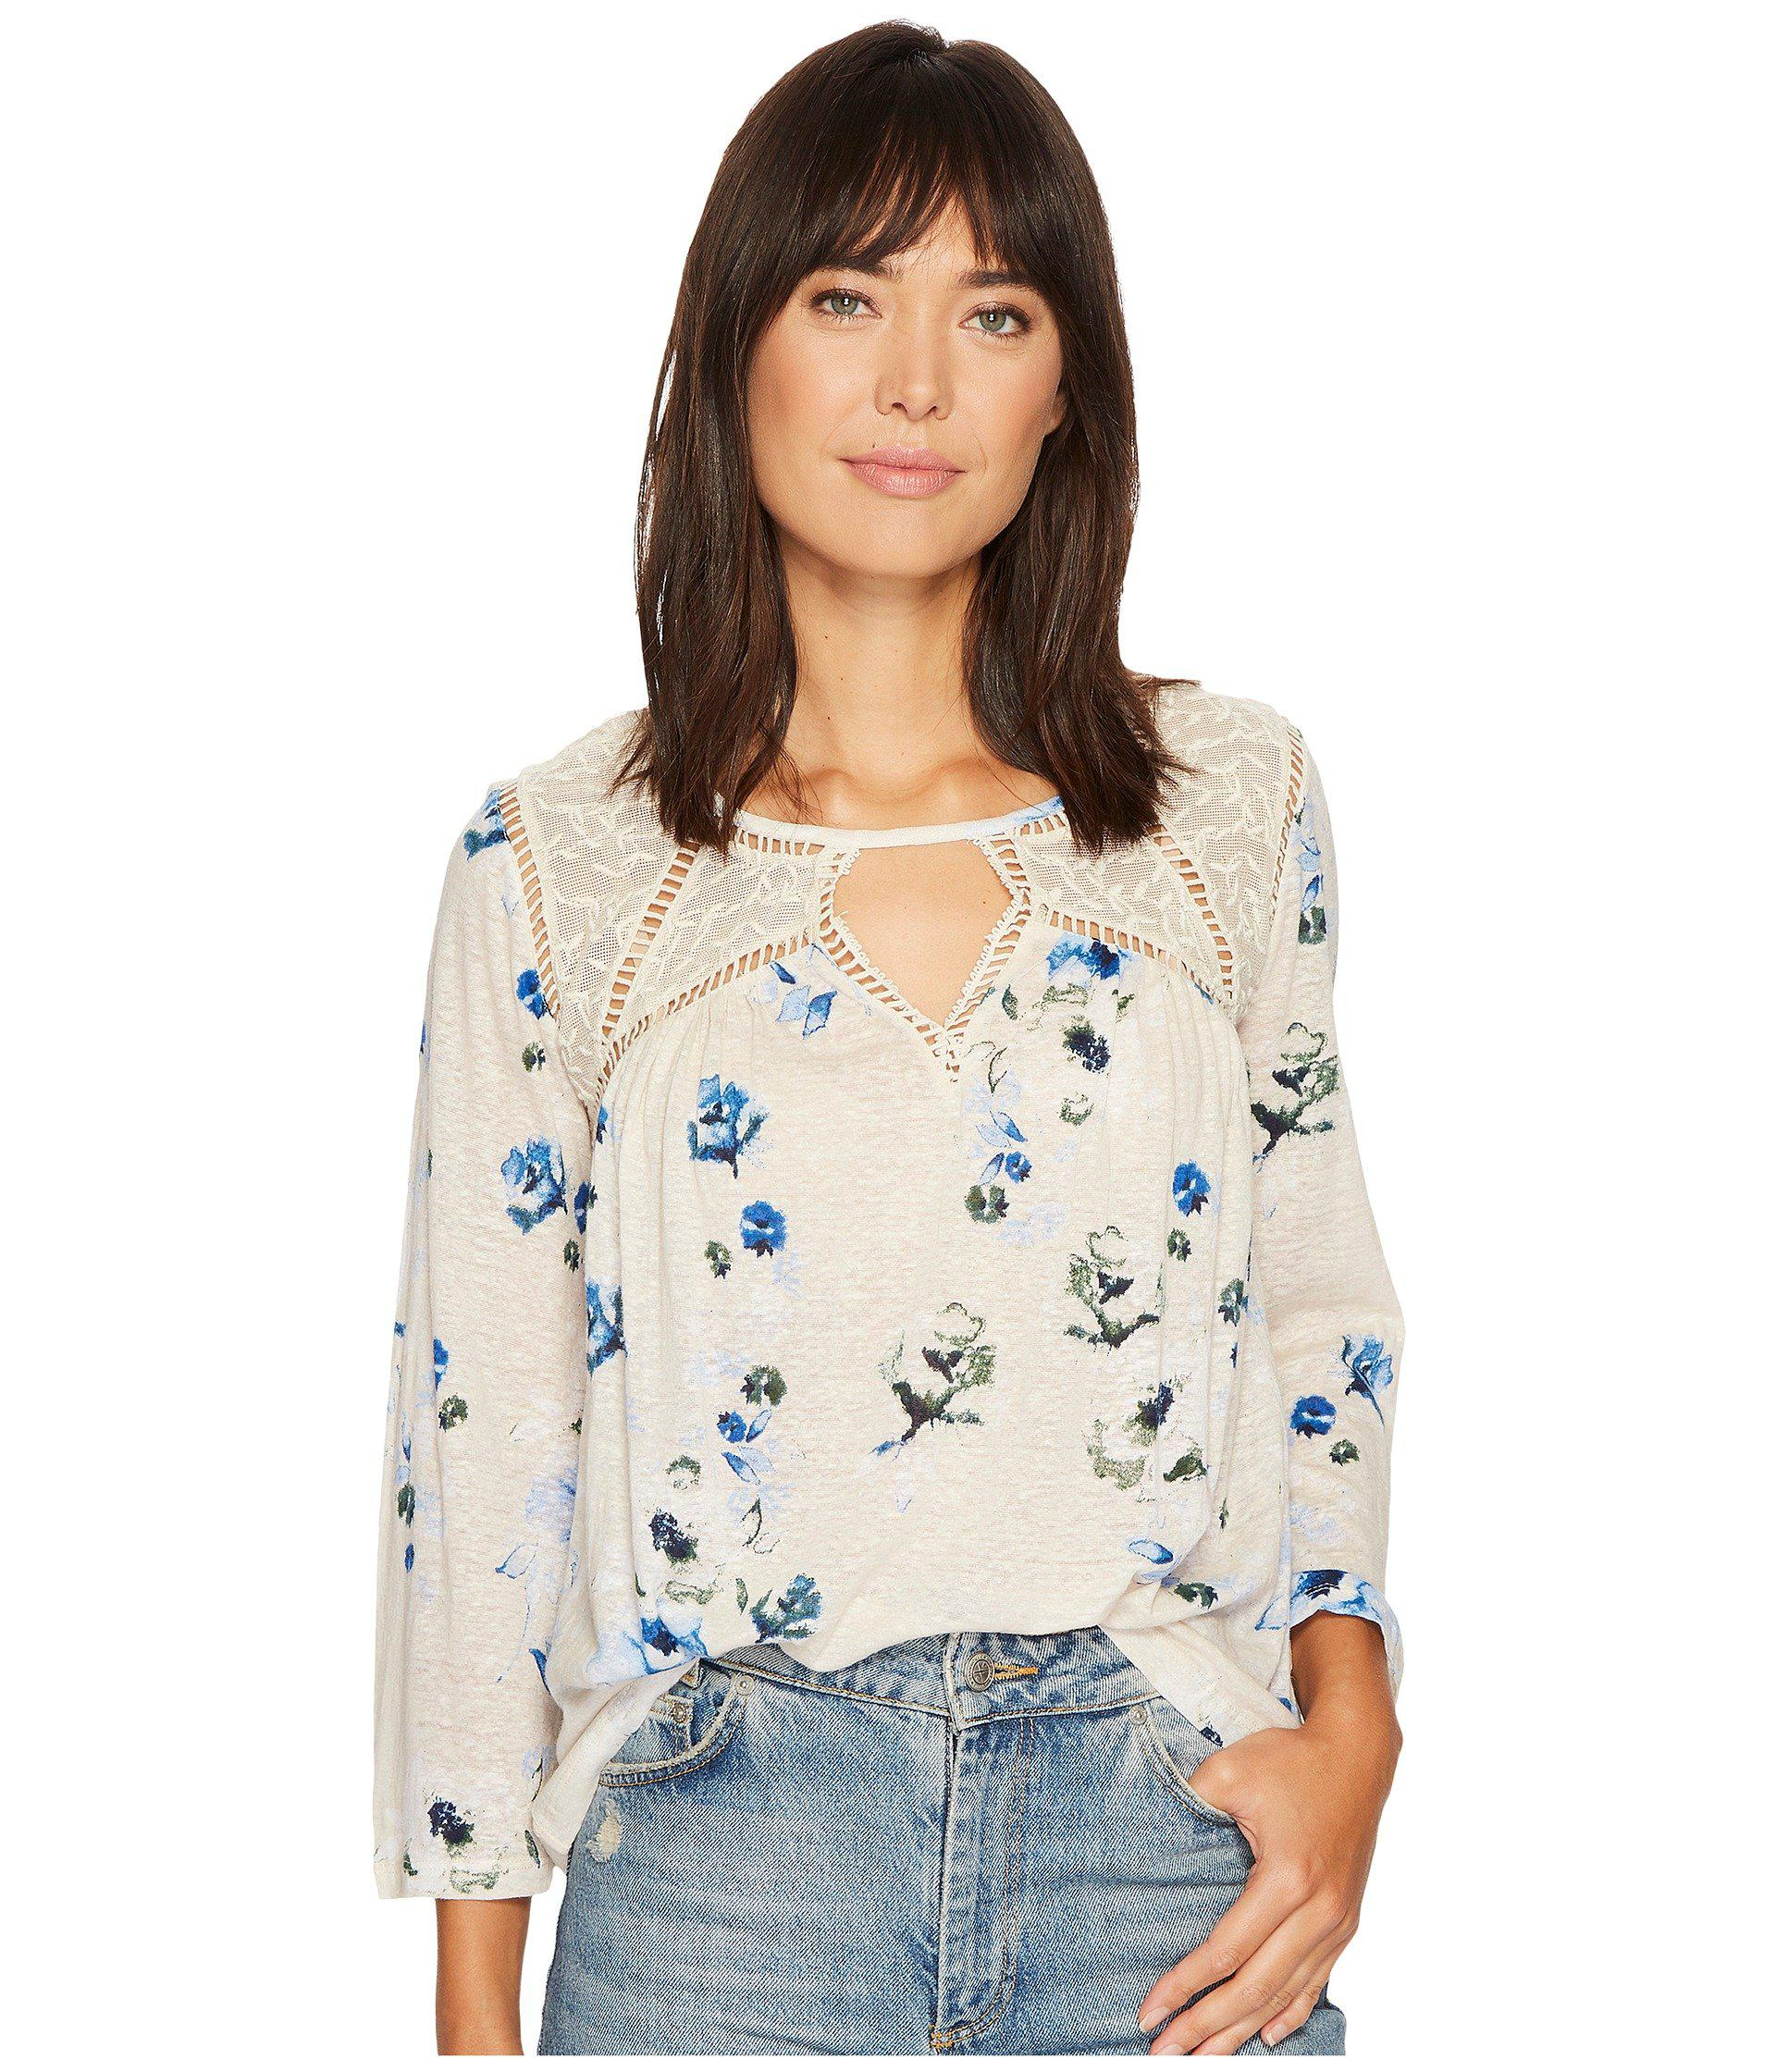 de181edd6368e Lyst - Lucky Brand Floral Lace Mix Peasant Top in Natural - Save 15%